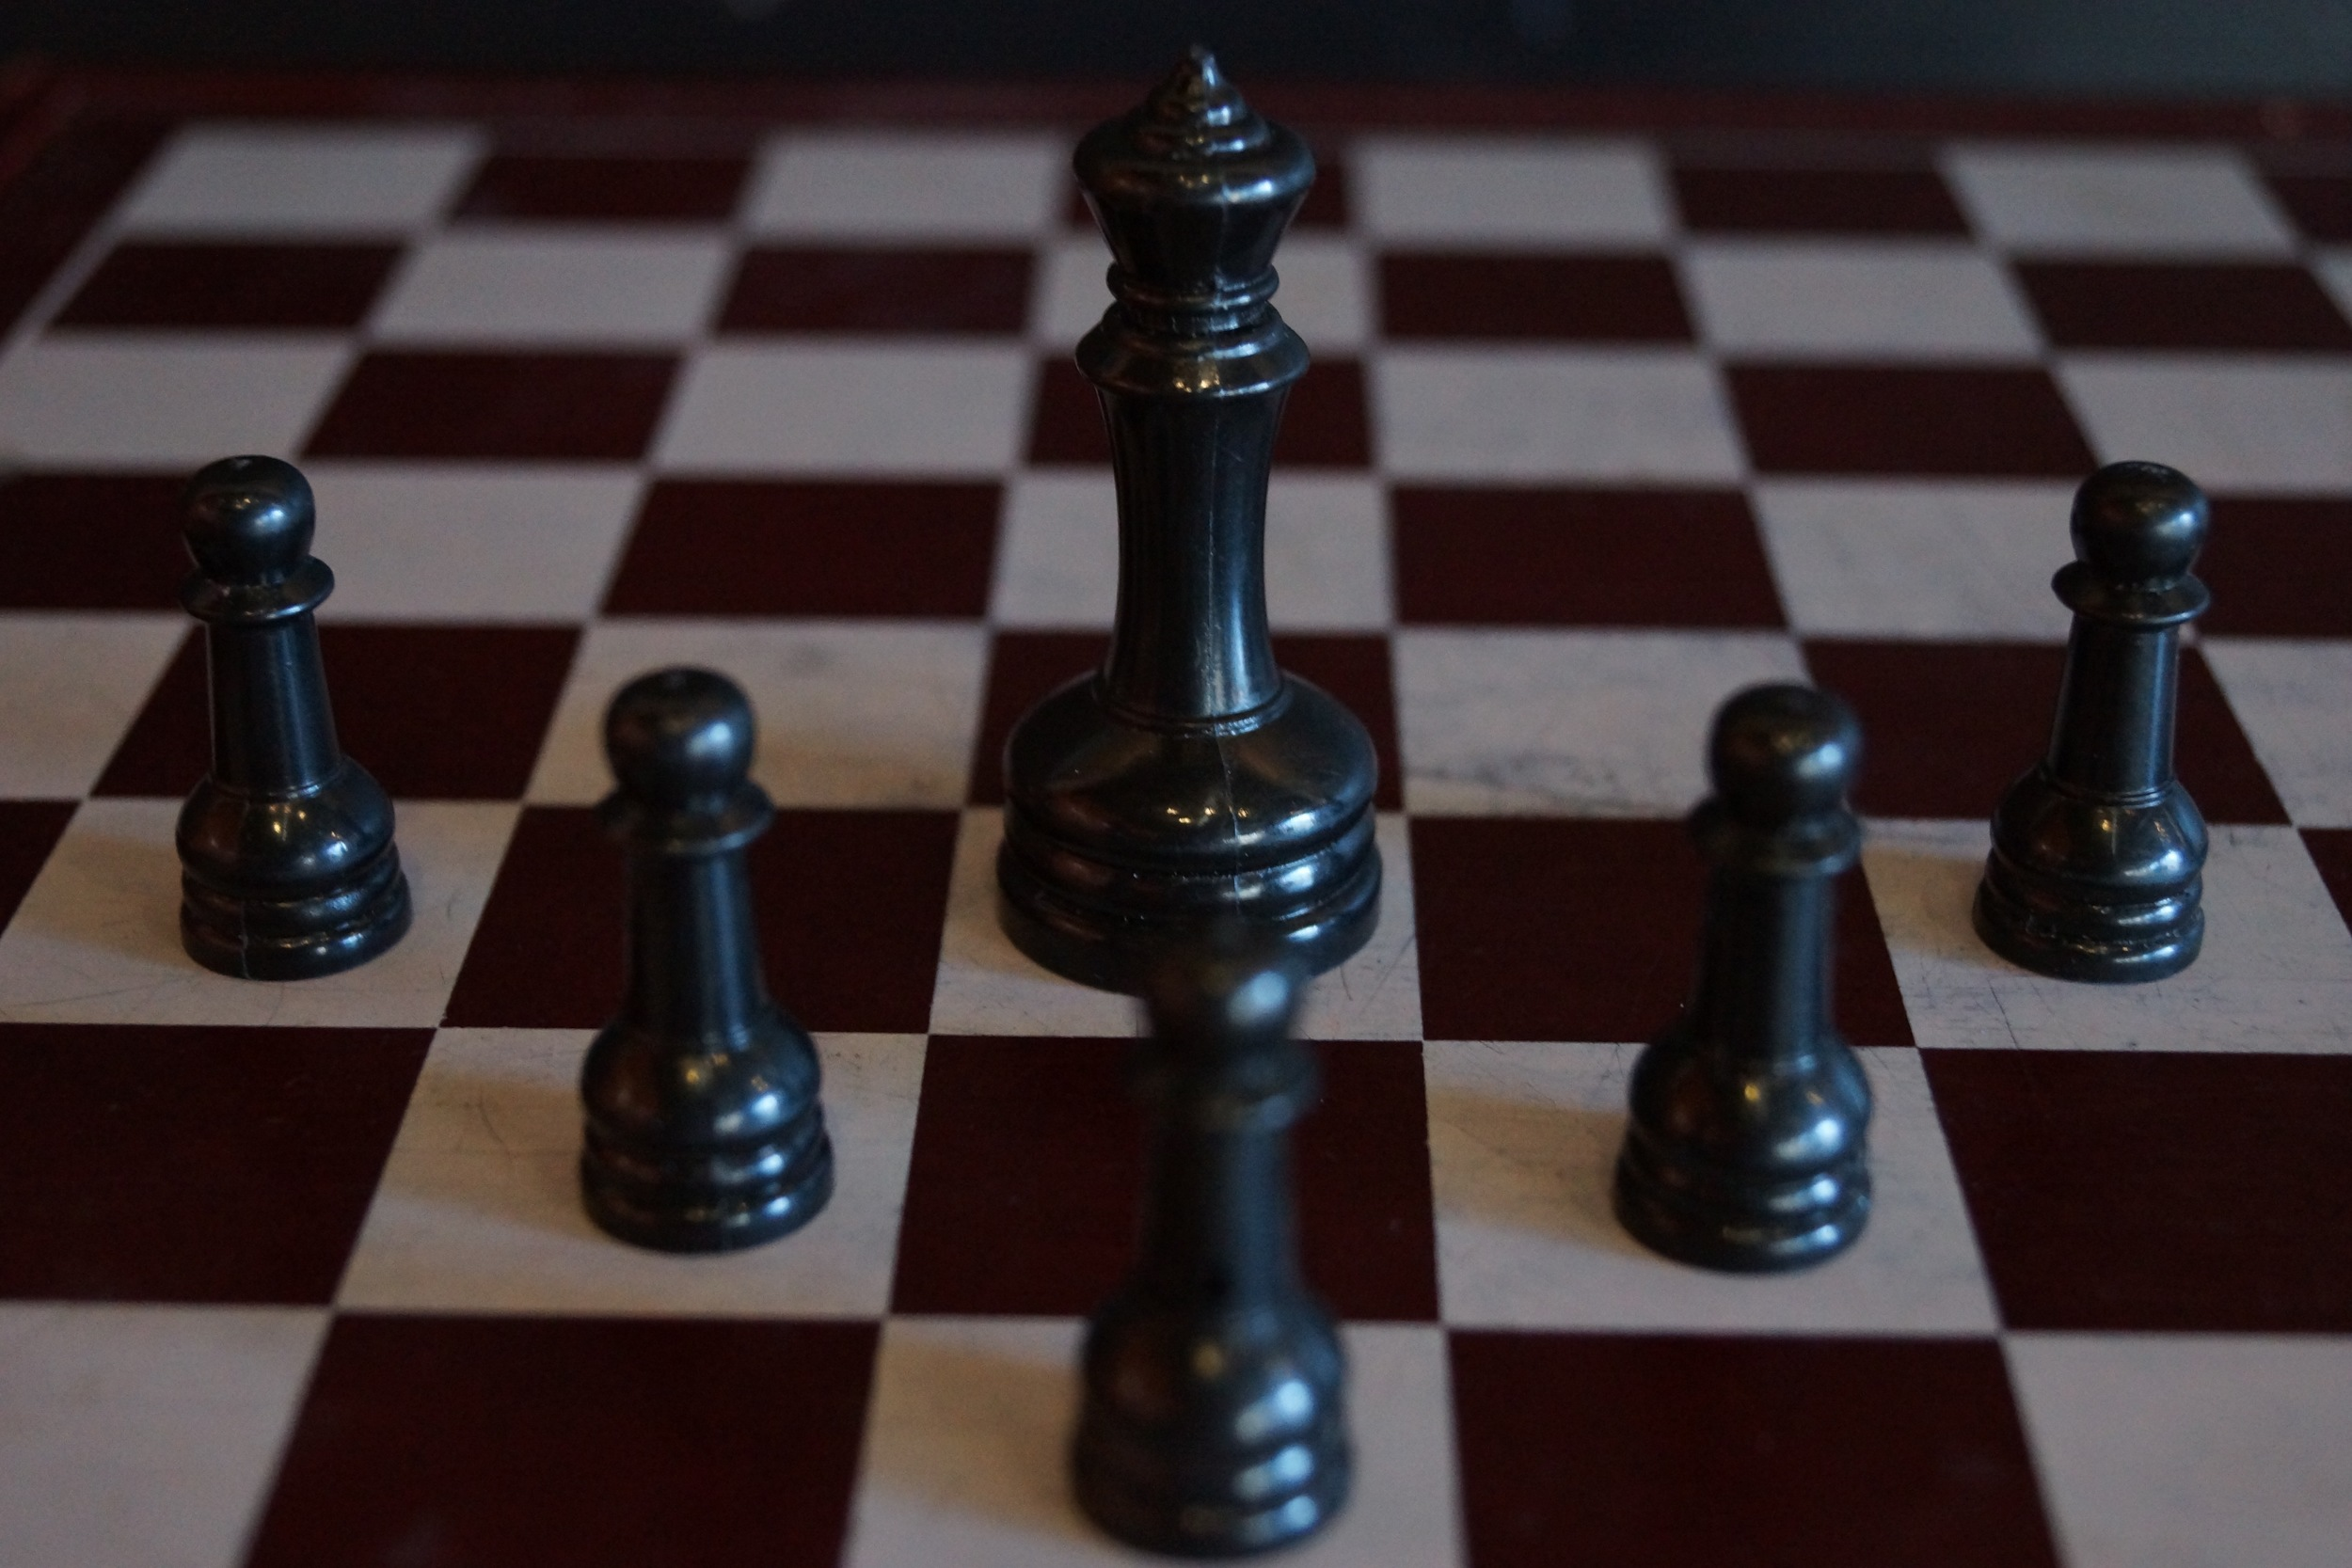 Pawns protect the king in the oxidative hierarchy